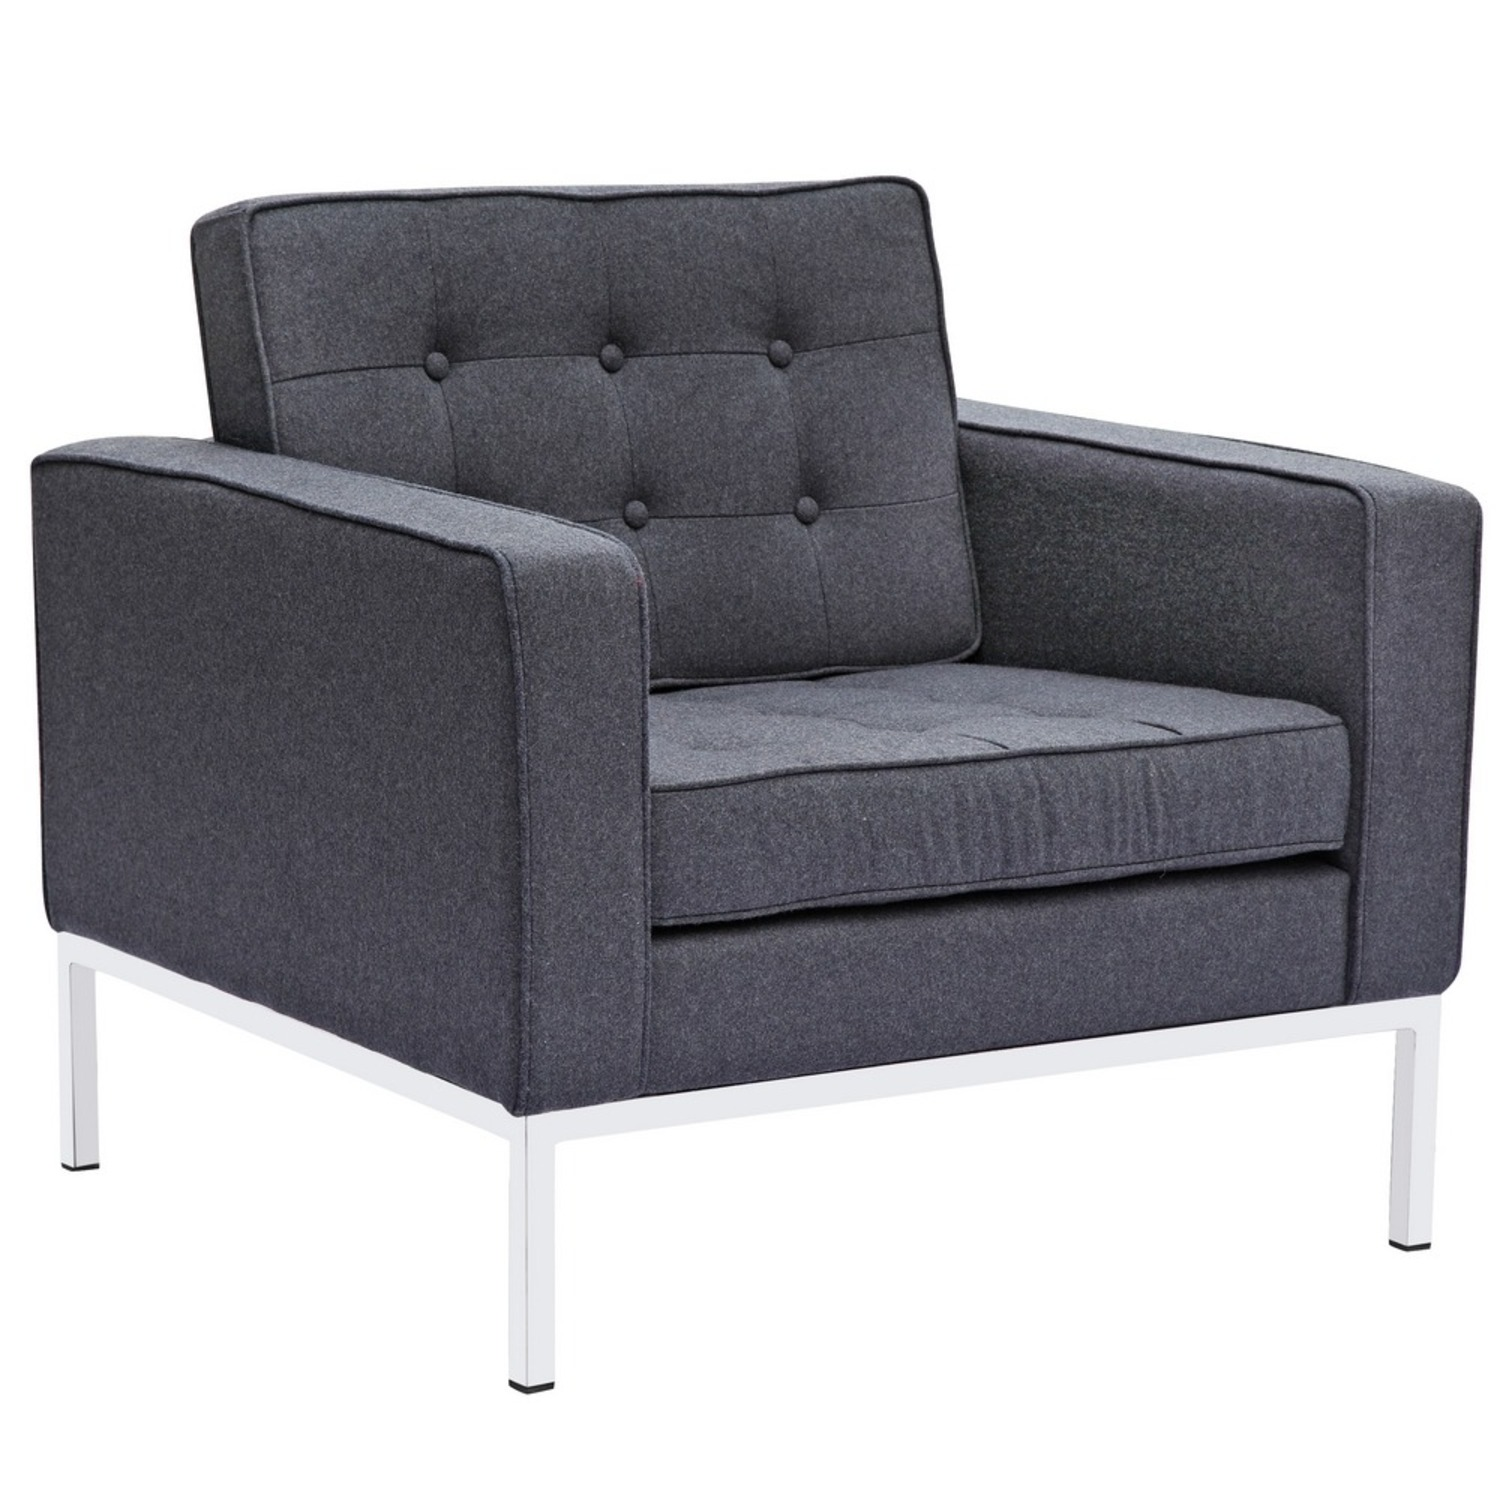 Contemporary Chair In Gray Wool Fabric - image-0